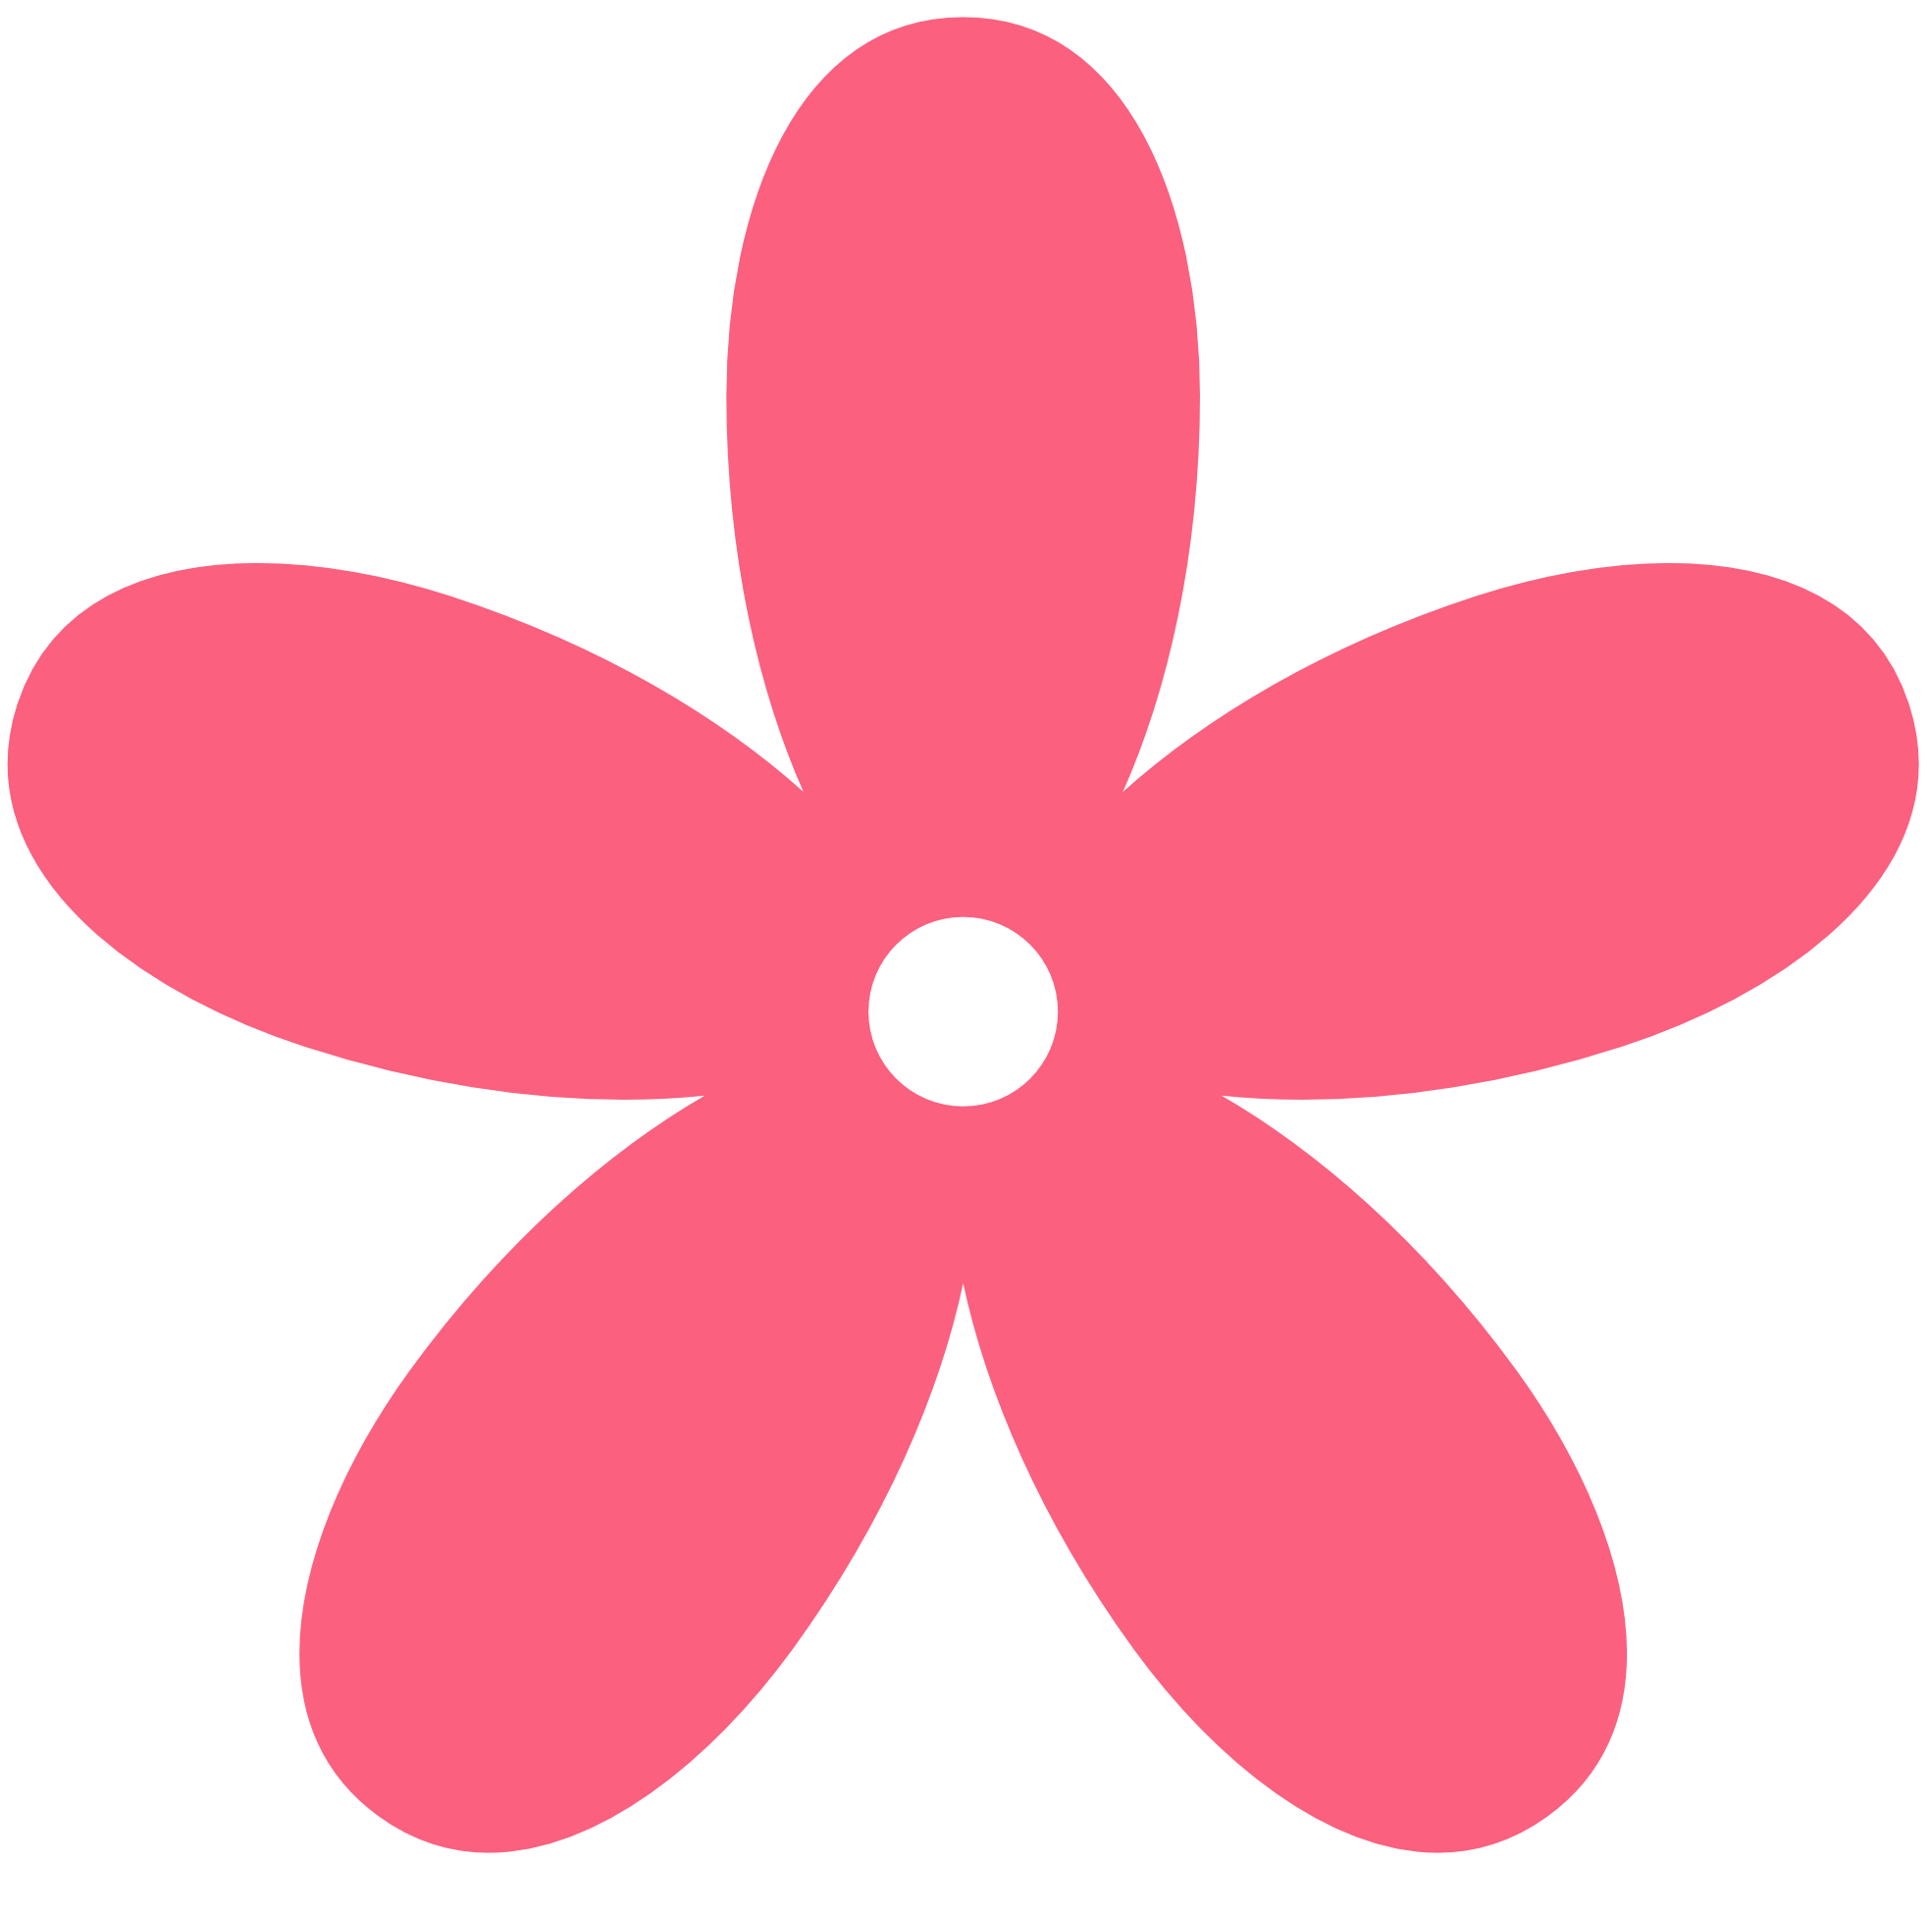 Flowers hot pink flower clipart free clipart images.